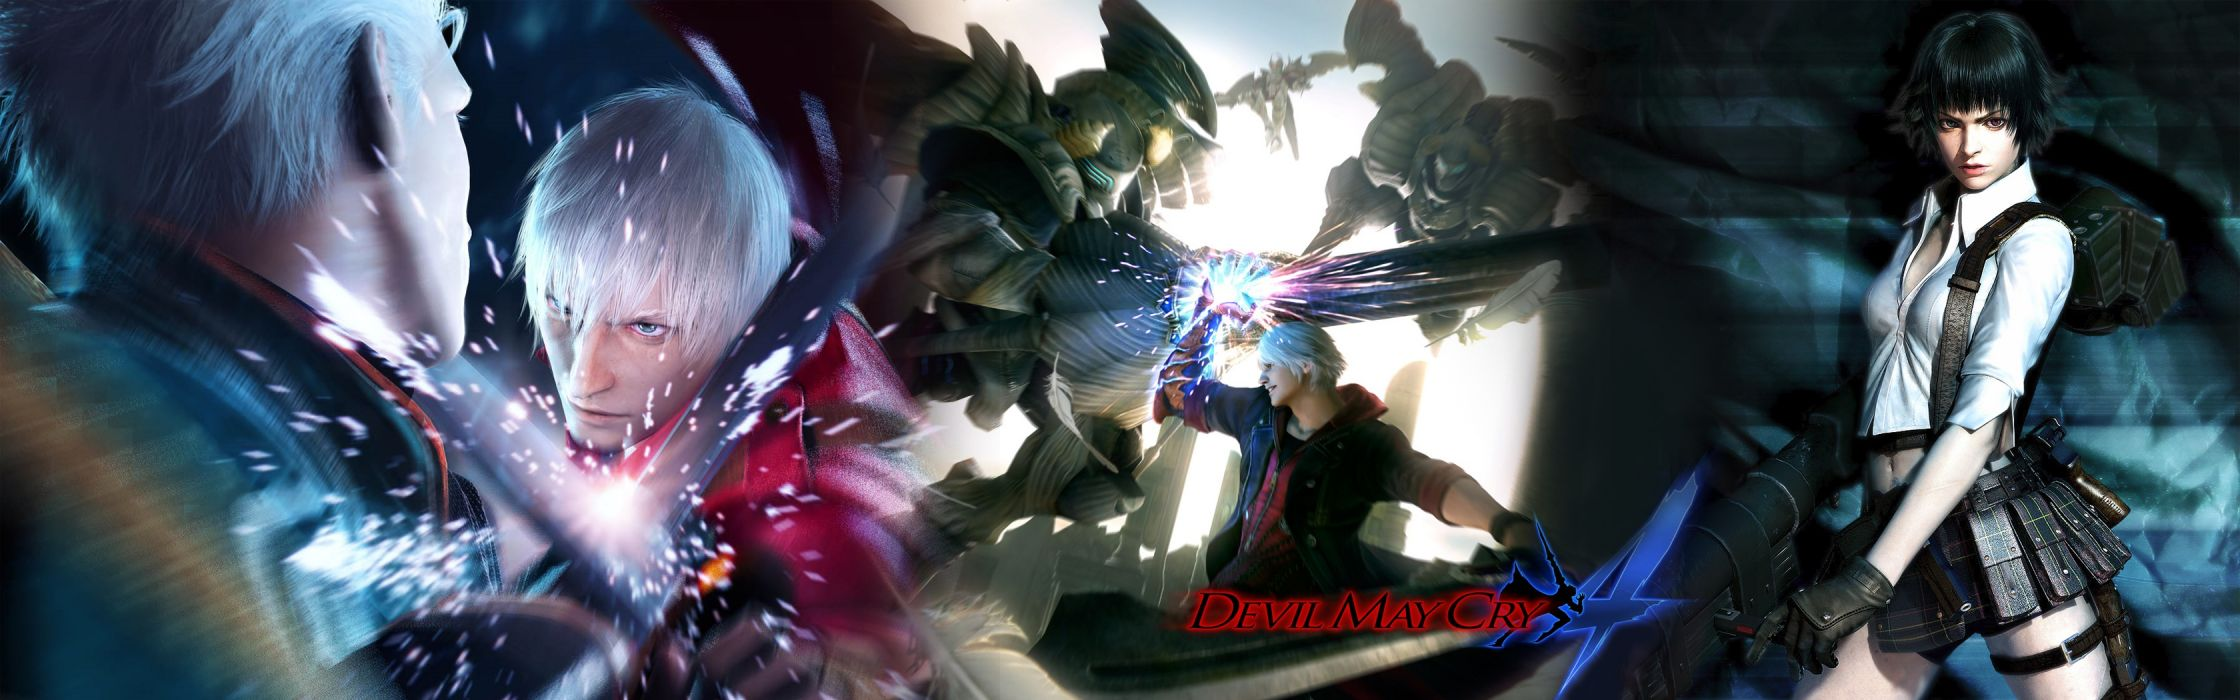 Devil May Cry dmc multi dual m wallpaper